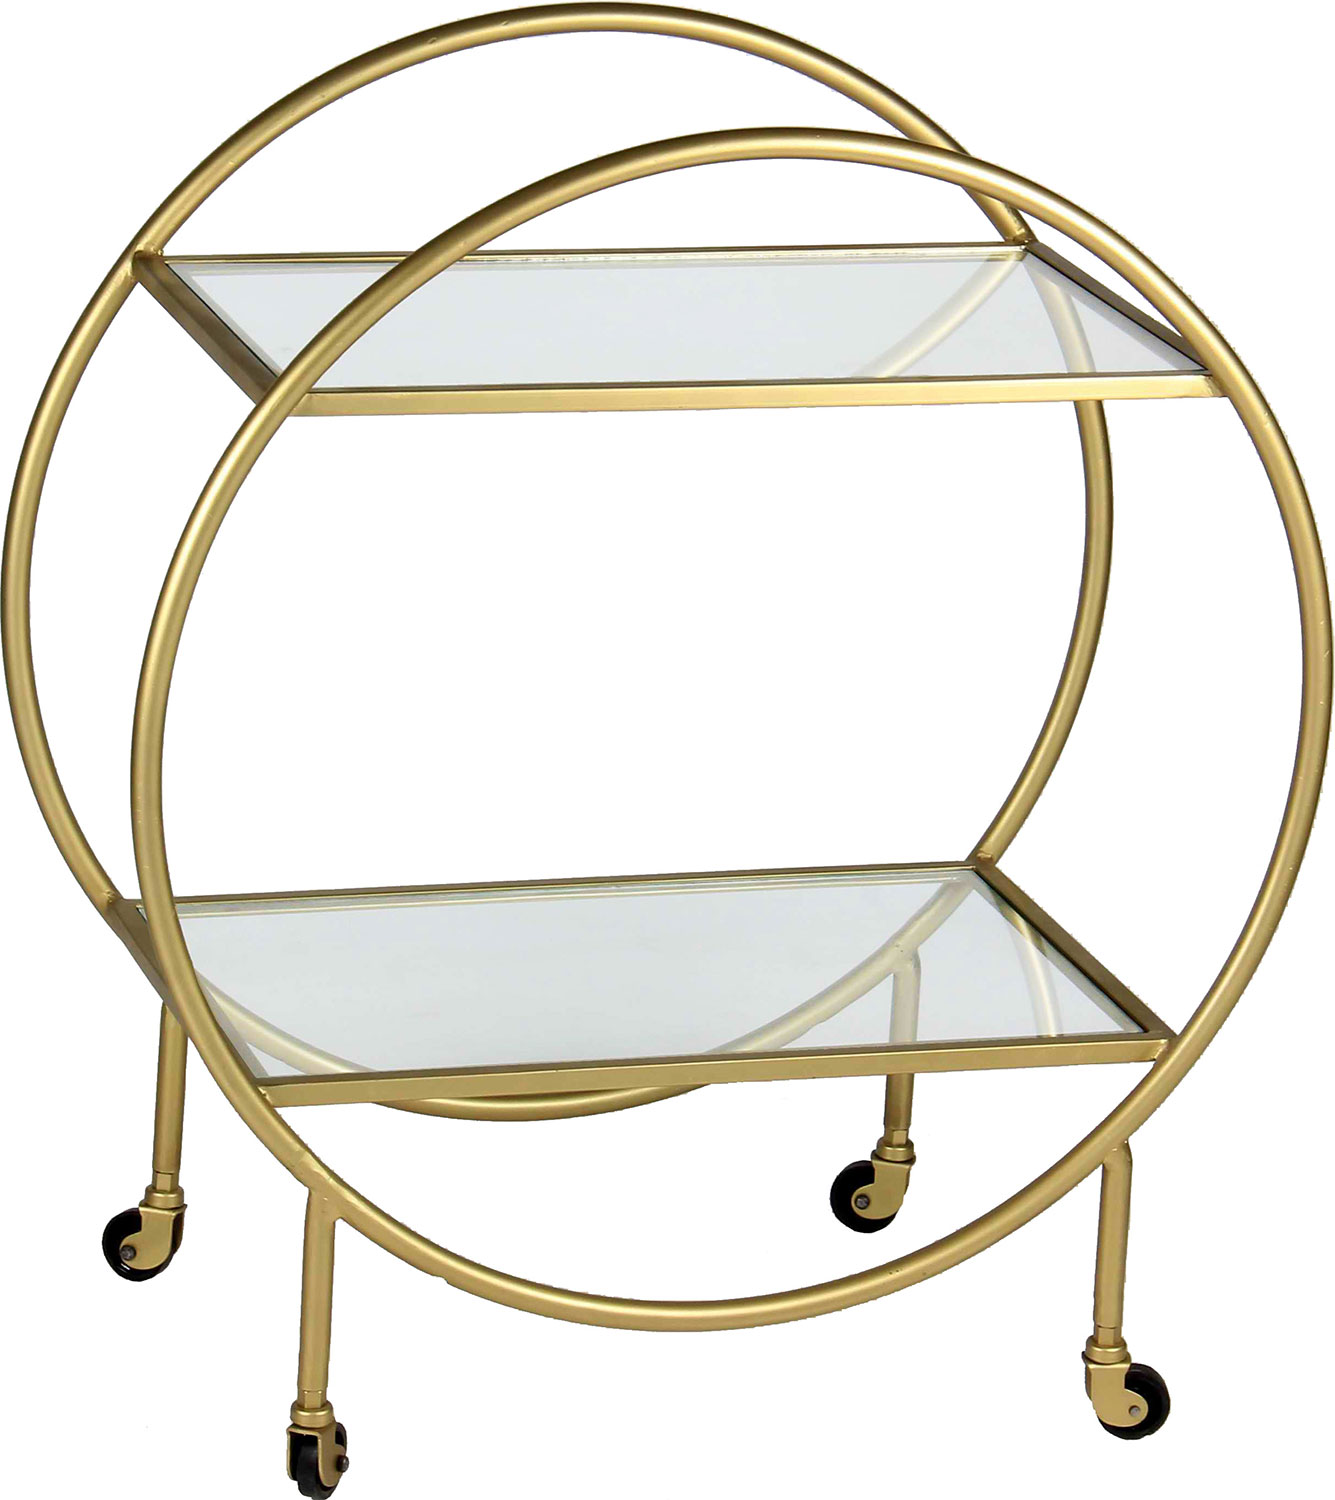 Ren-Wil Bass Coffee Table - Antique Gold